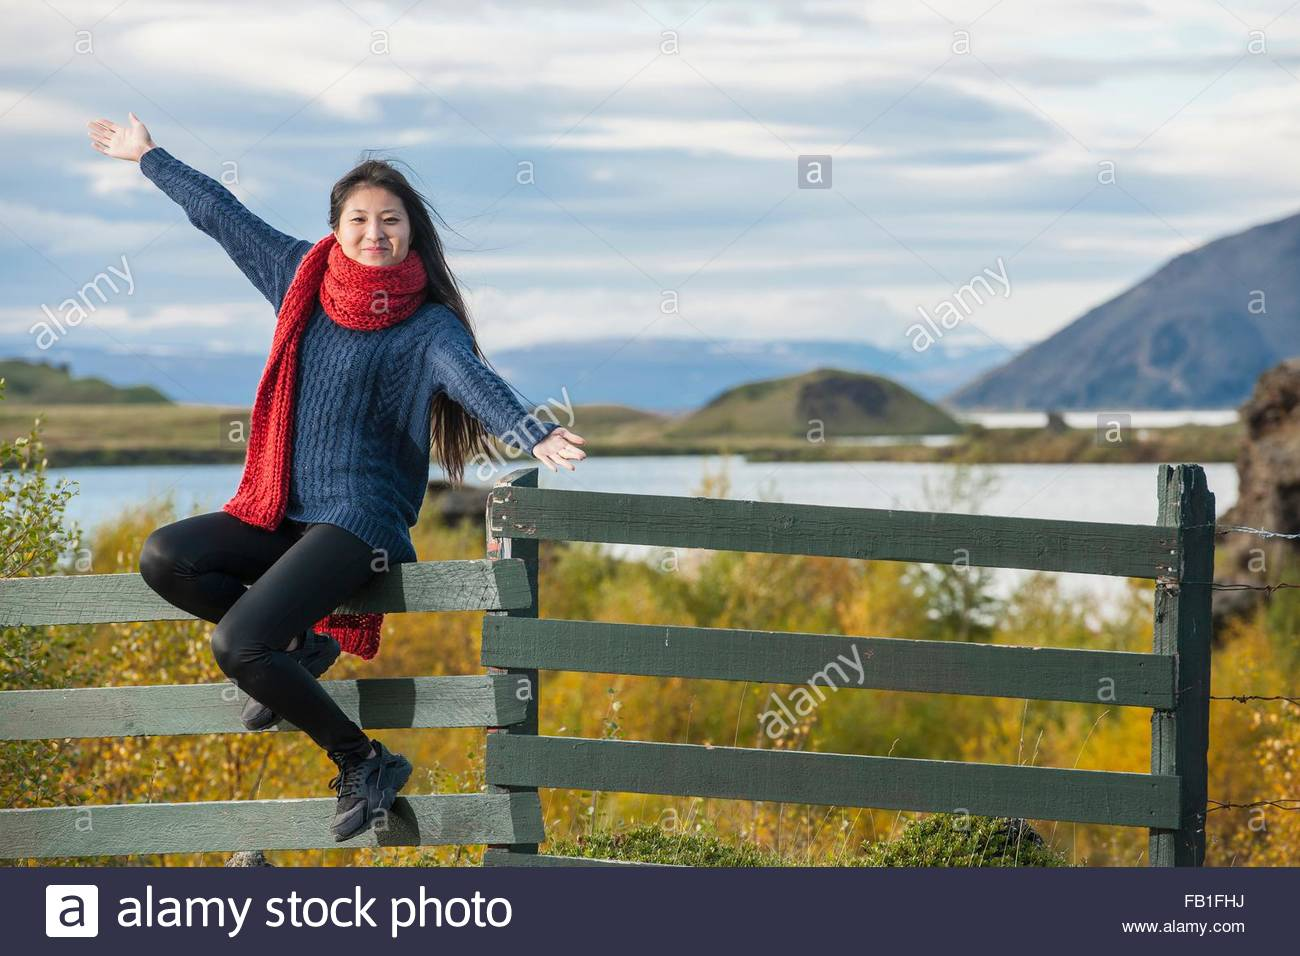 Mid adult woman wearing red wool scarf sitting on fence arms open looking at camera smiling, Myvatn, North Iceland, - Stock Image